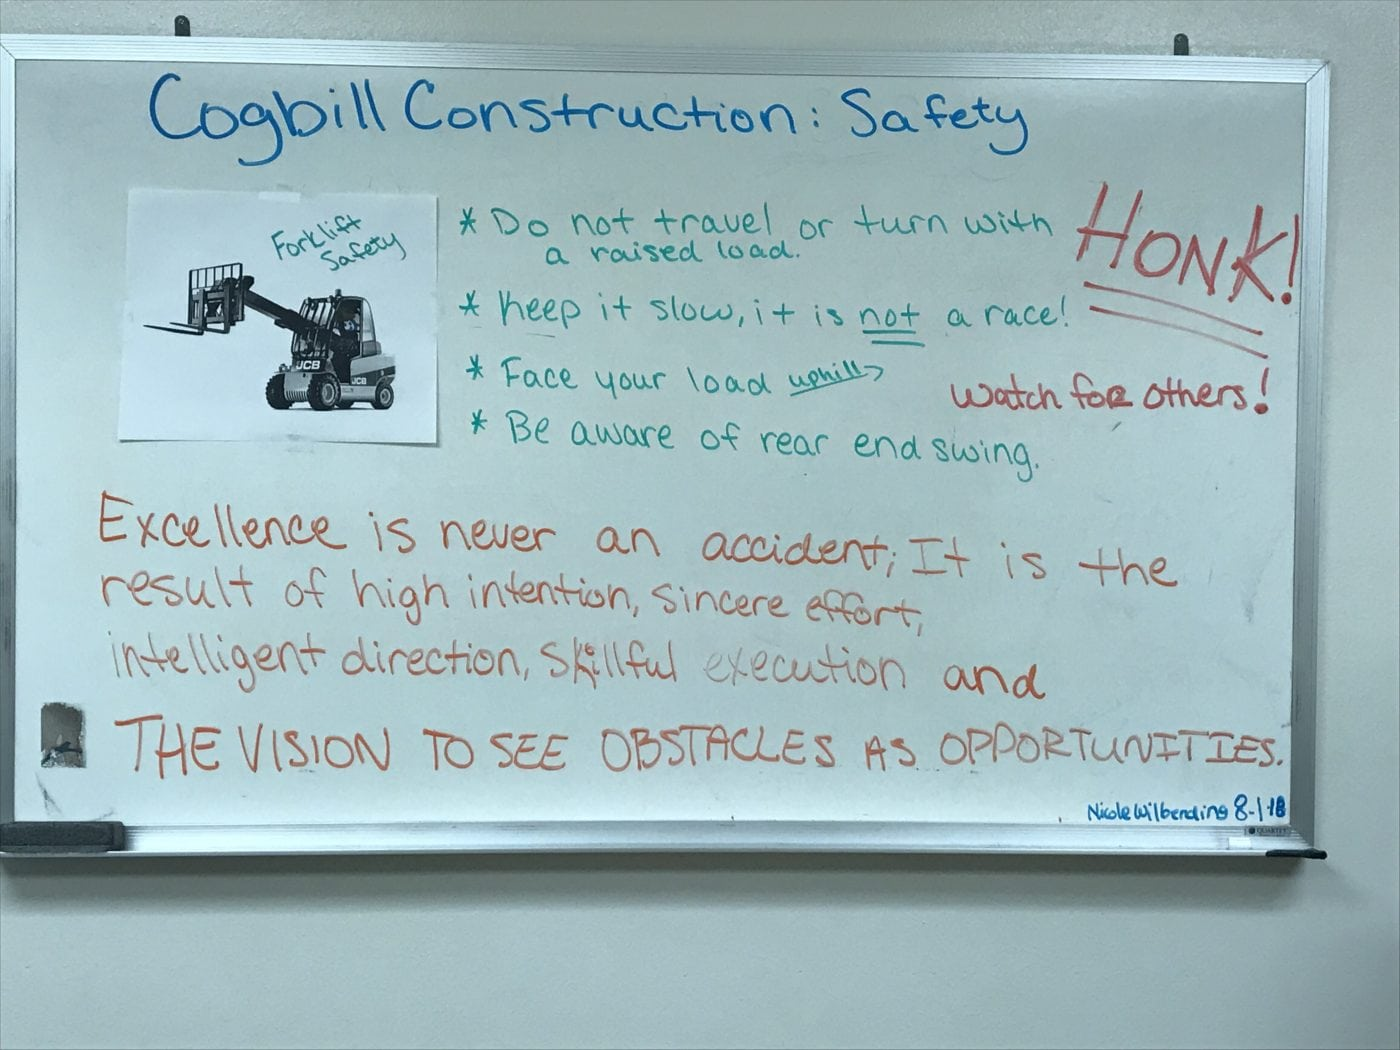 Forklift Safety: Cogbill Construction